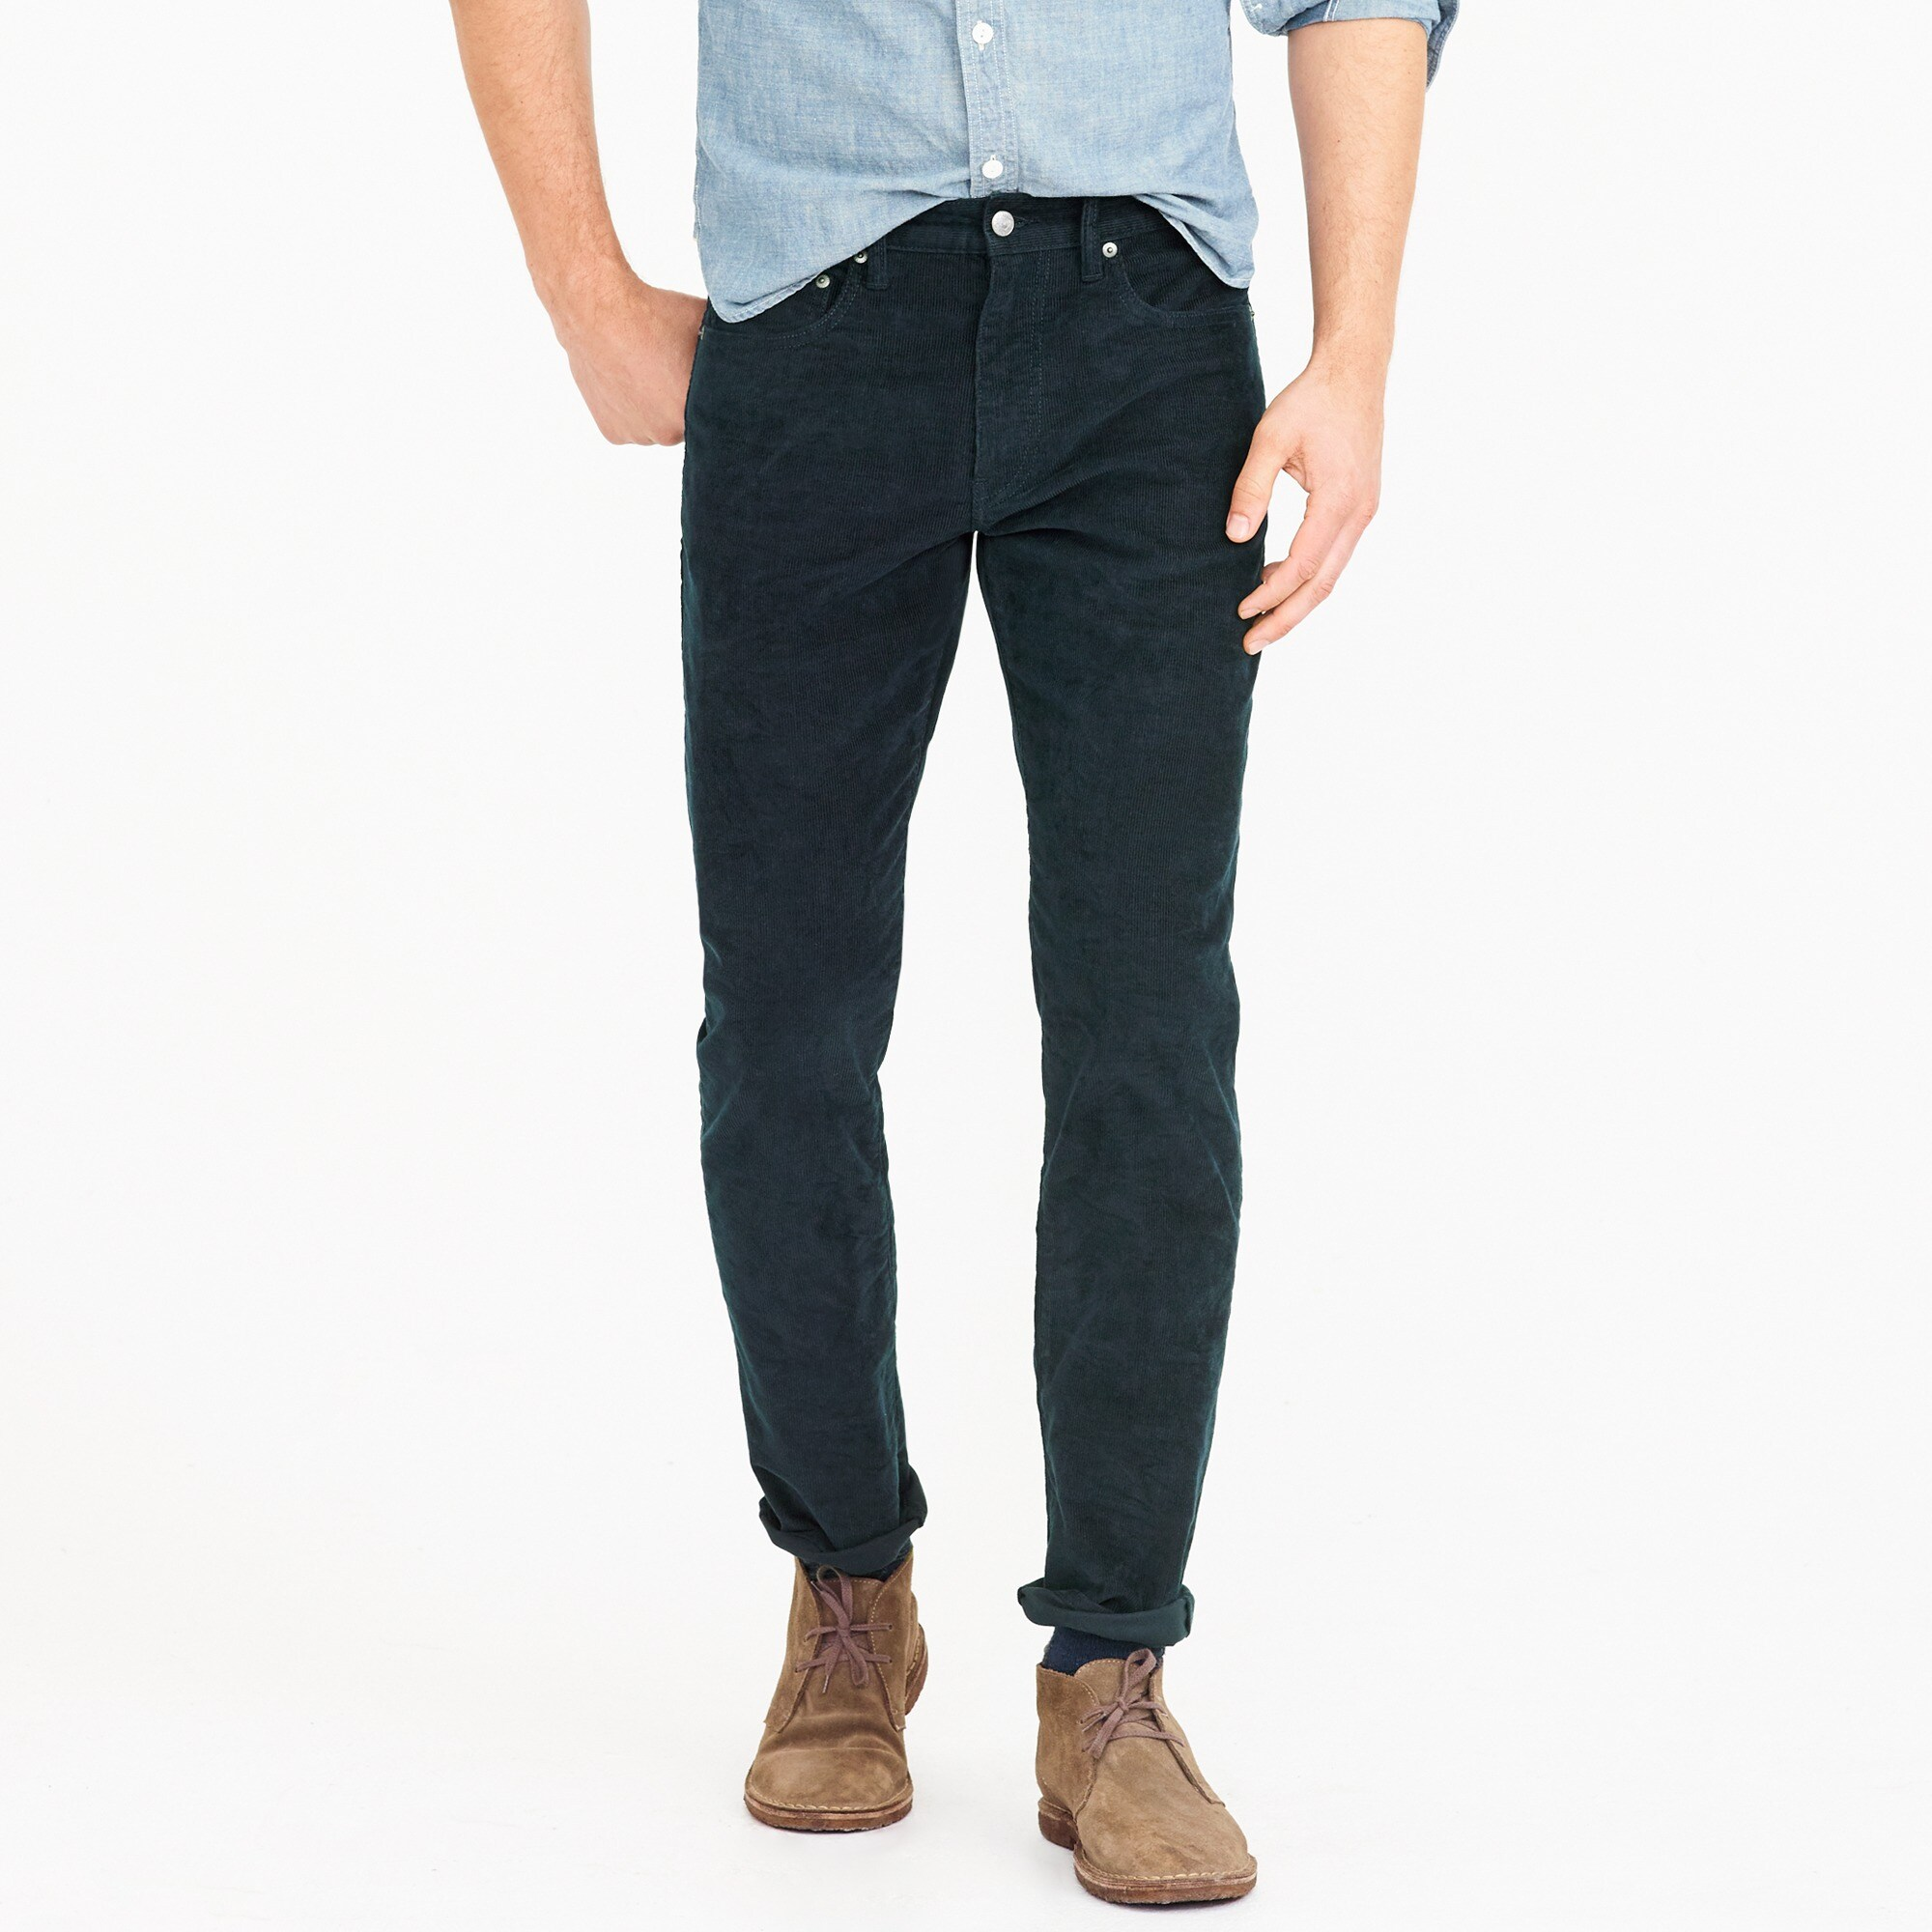 mens 770 Straight-fit pant in corduroy